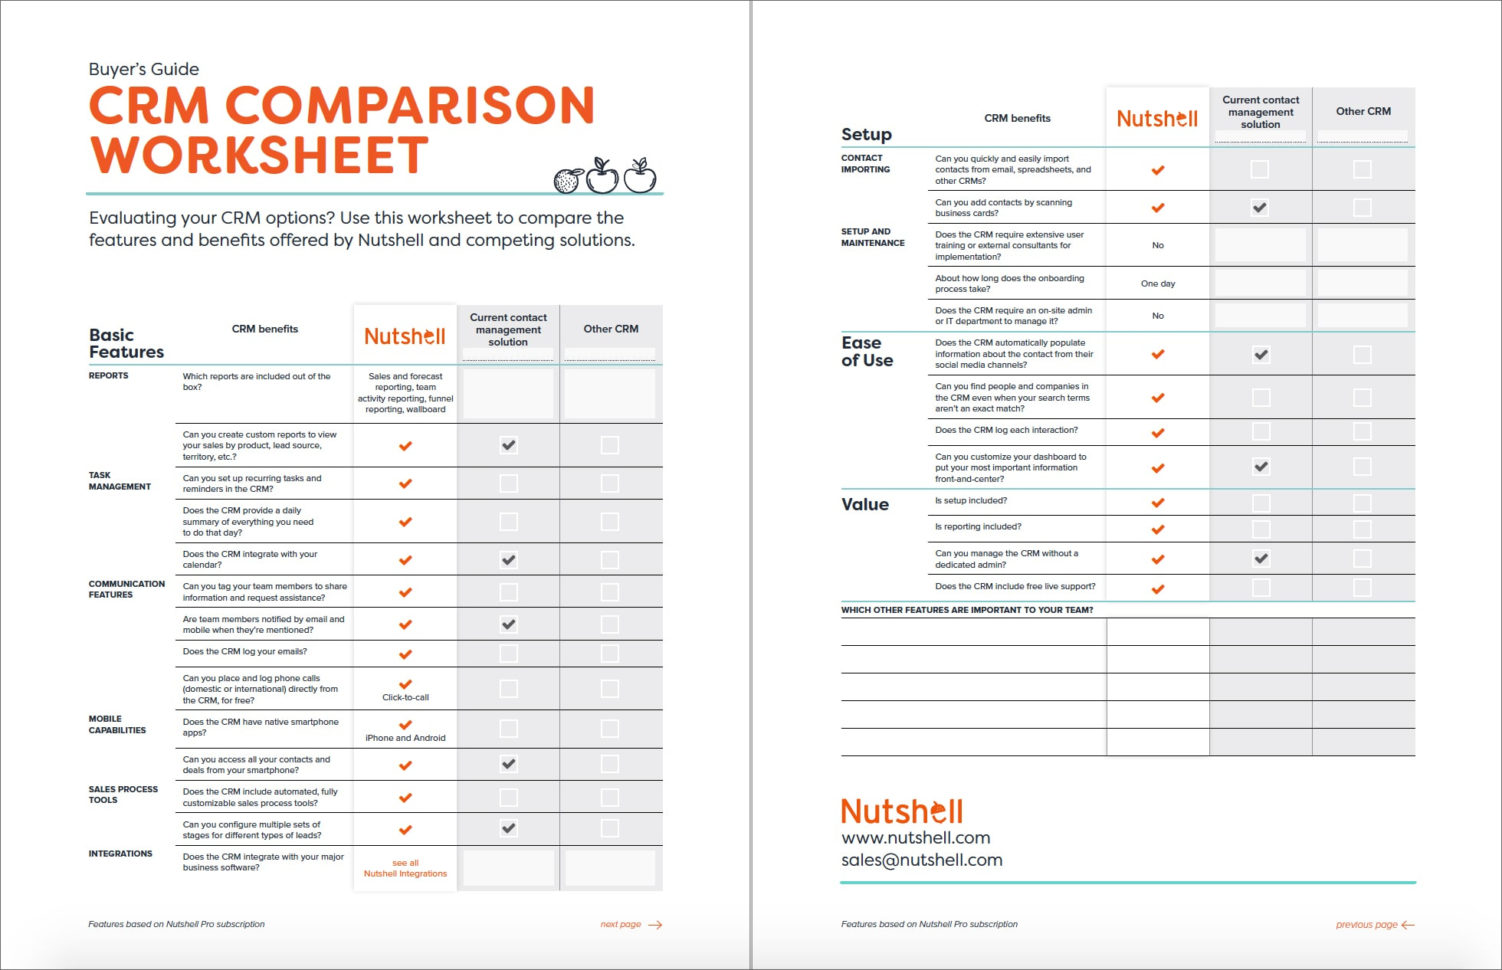 Crm Comparison Spreadsheet In Crm Comparison Worksheet  Nutshell  Free Crm Resources